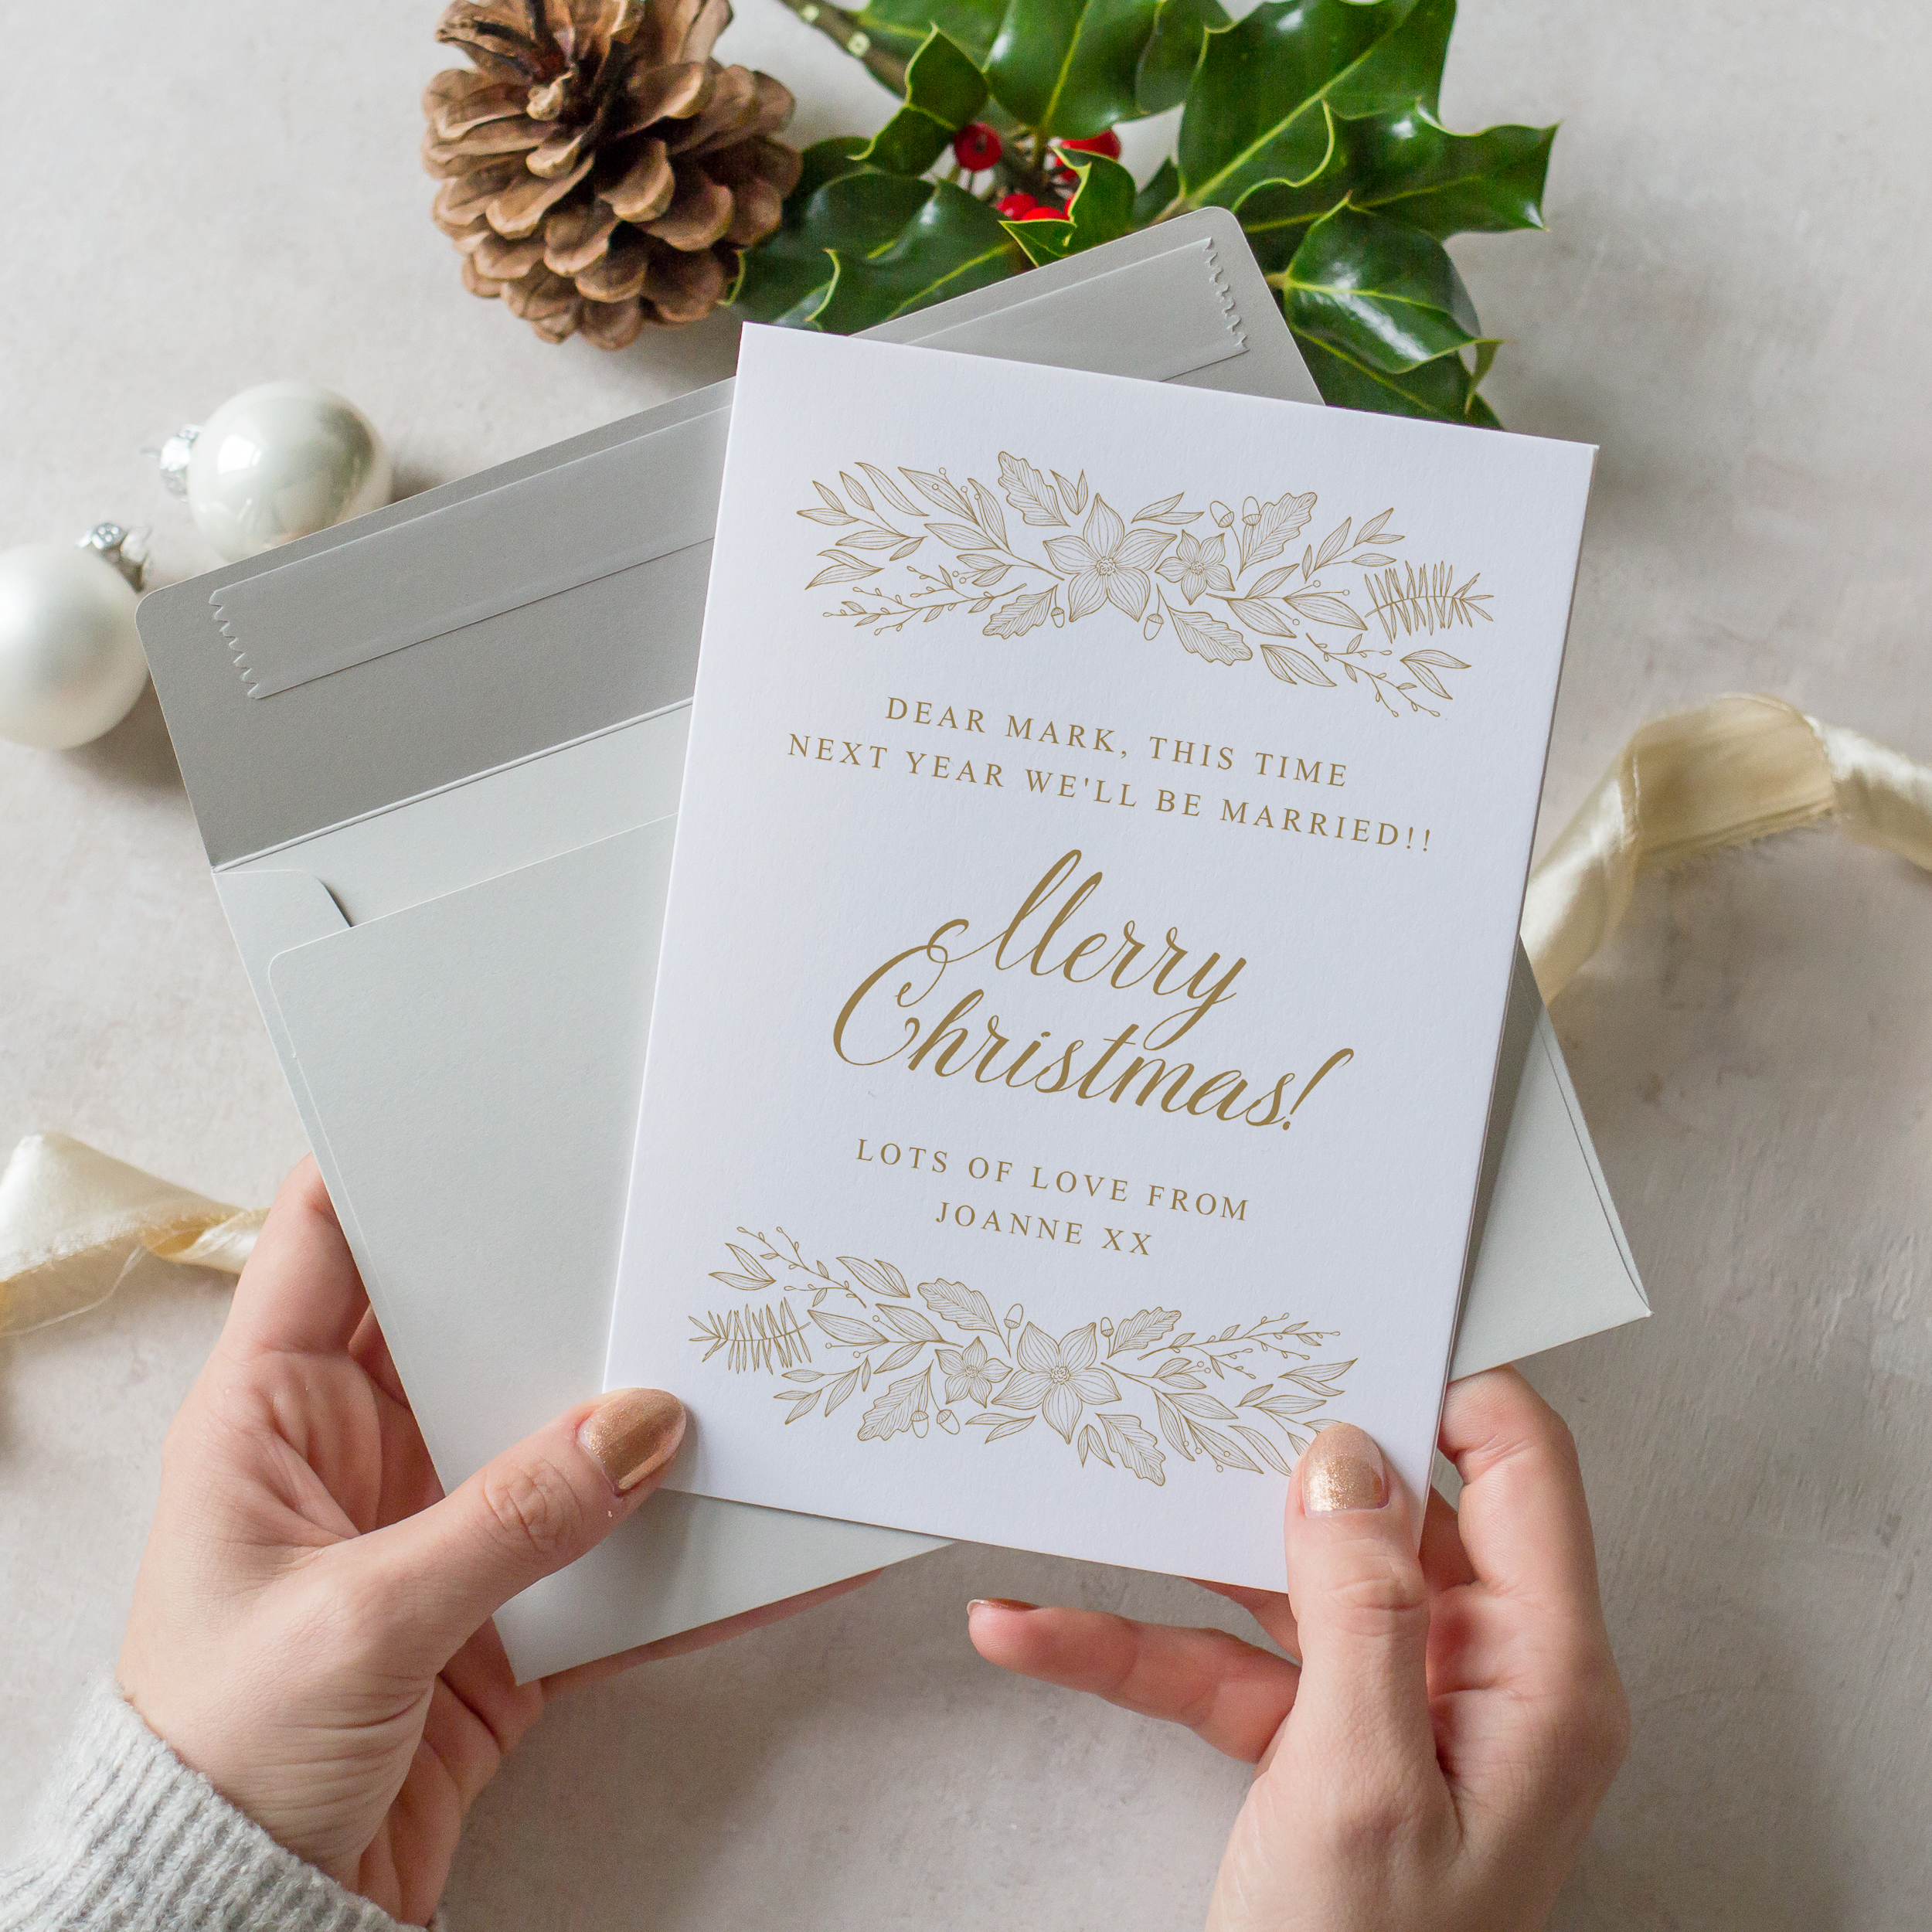 Personalised Fiance Christmas Card, Hand Illustrated Christmas Cards, Hygge Christmas Card, Unique Christmas Card  with Envelope.jpg